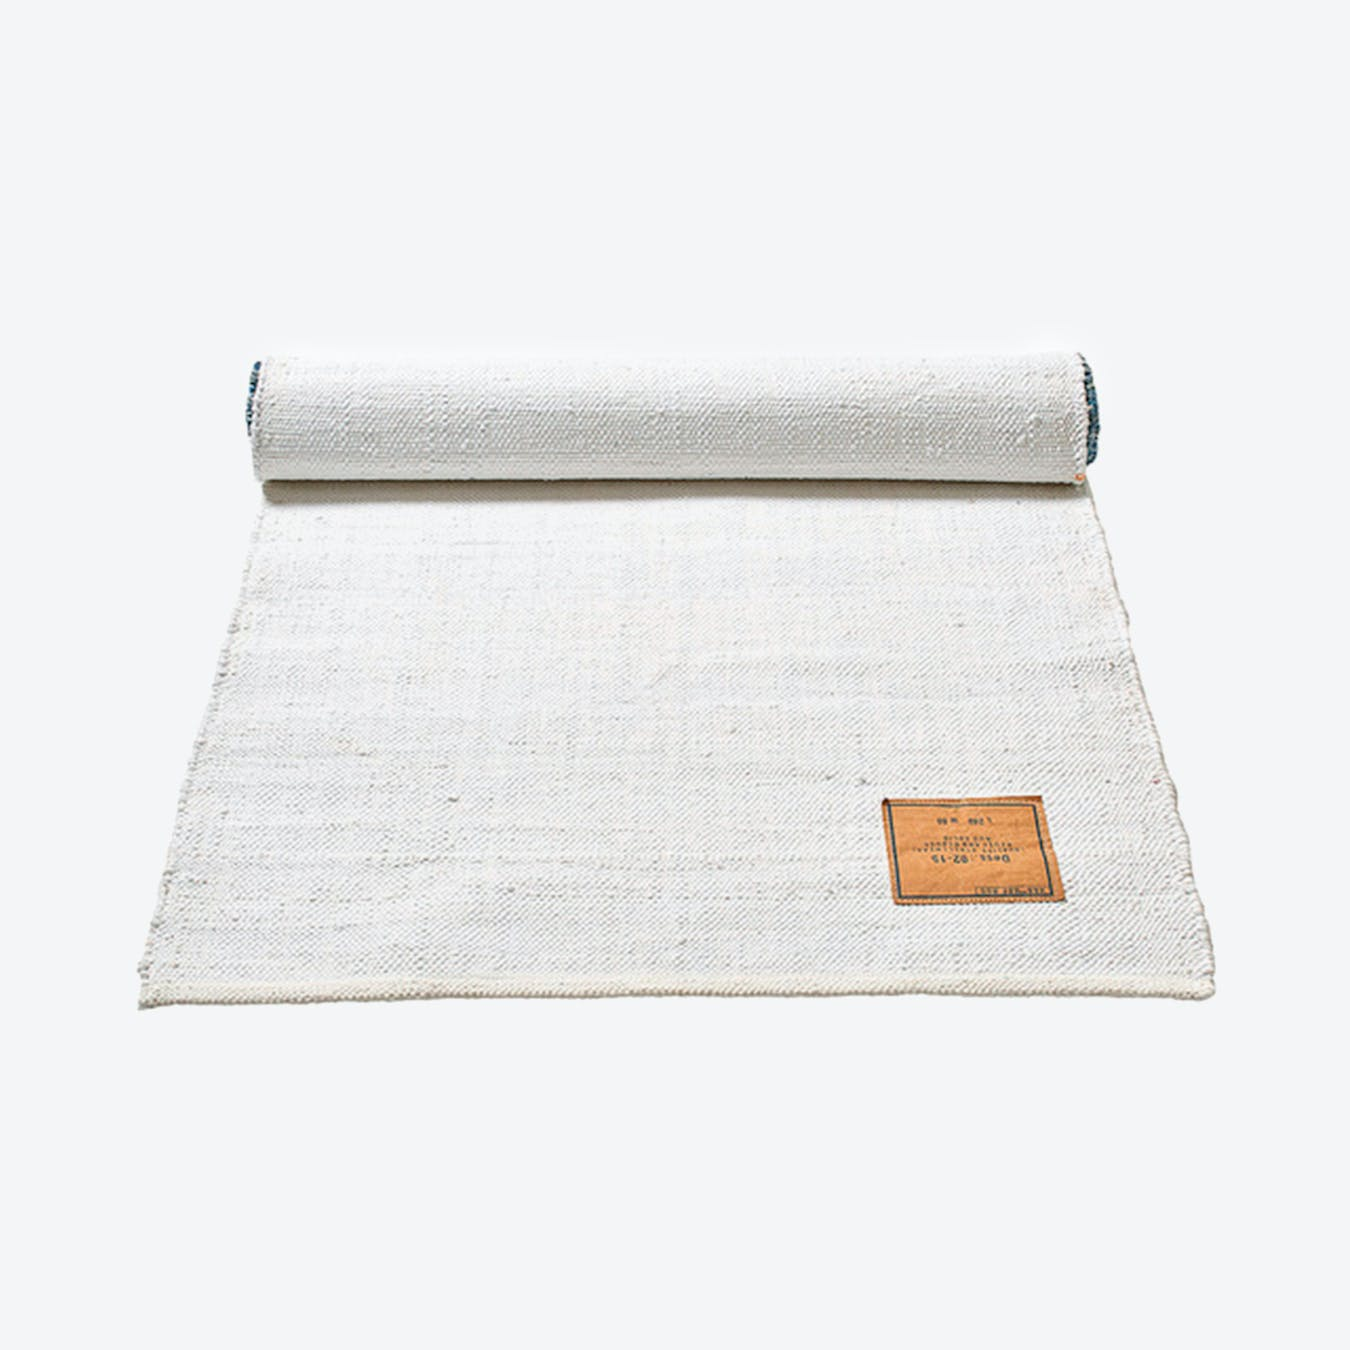 White Tee and Jeans Rug ( 80 x 240 cm)